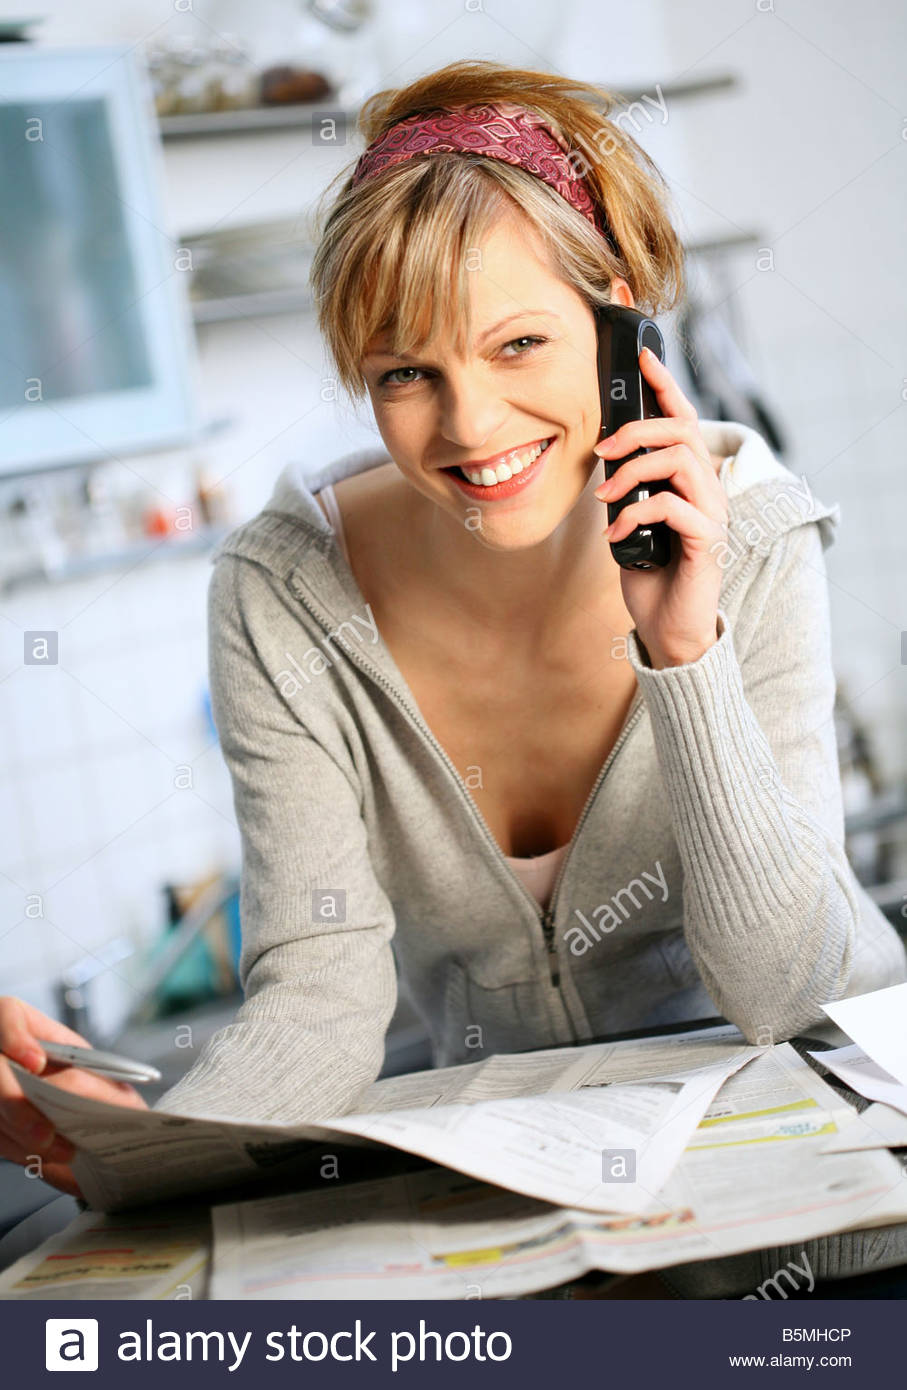 young woman searching for a job in a newspaper, making a phone call with mobile phone - Stock Image